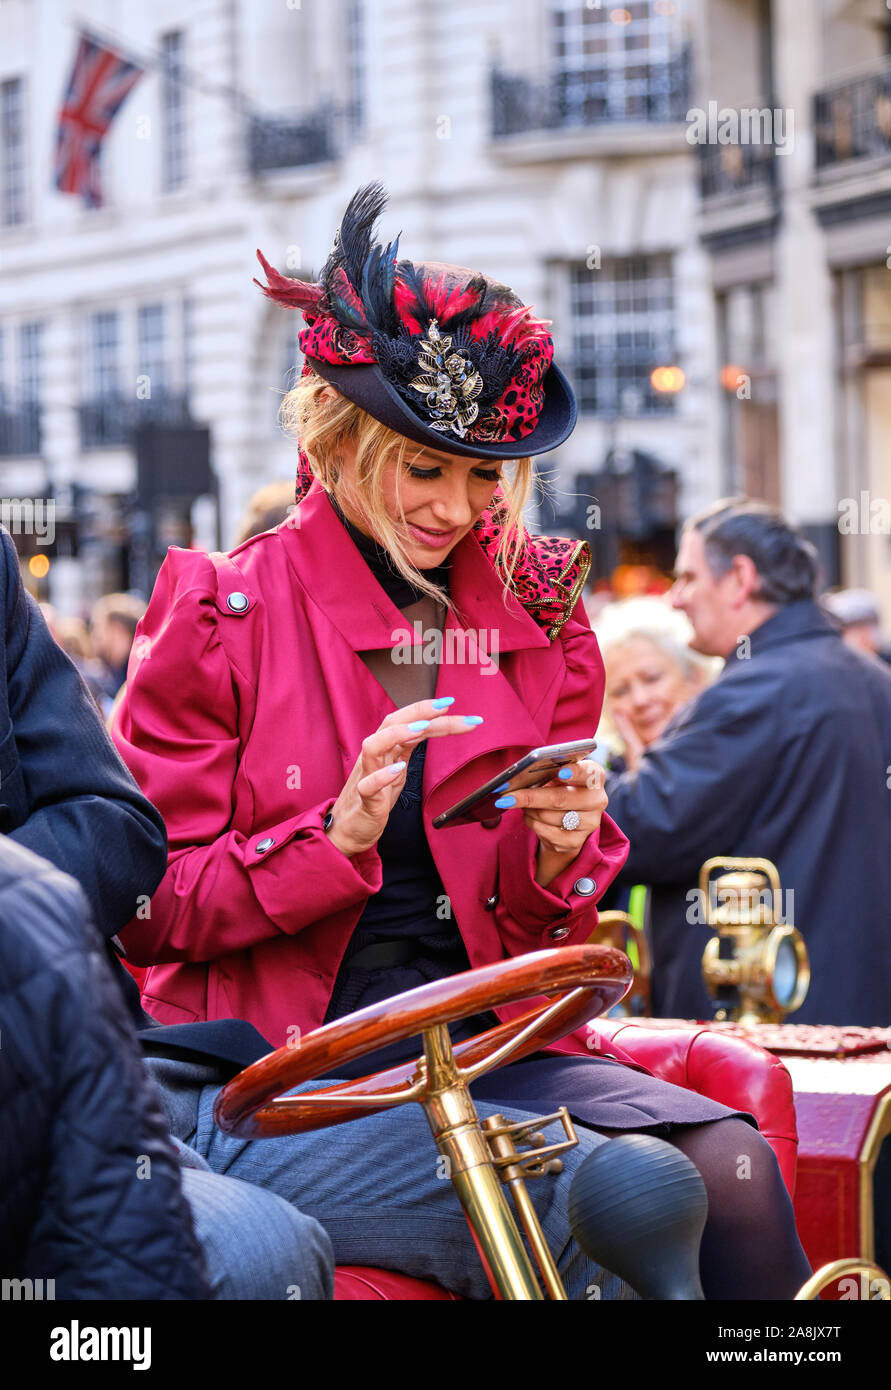 young-lady-in-vintage-victorian-clothing-sitting-on-vintage-car-looking-at-her-cell-phone-creating-an-anachronism-2A8JX7T.jpg